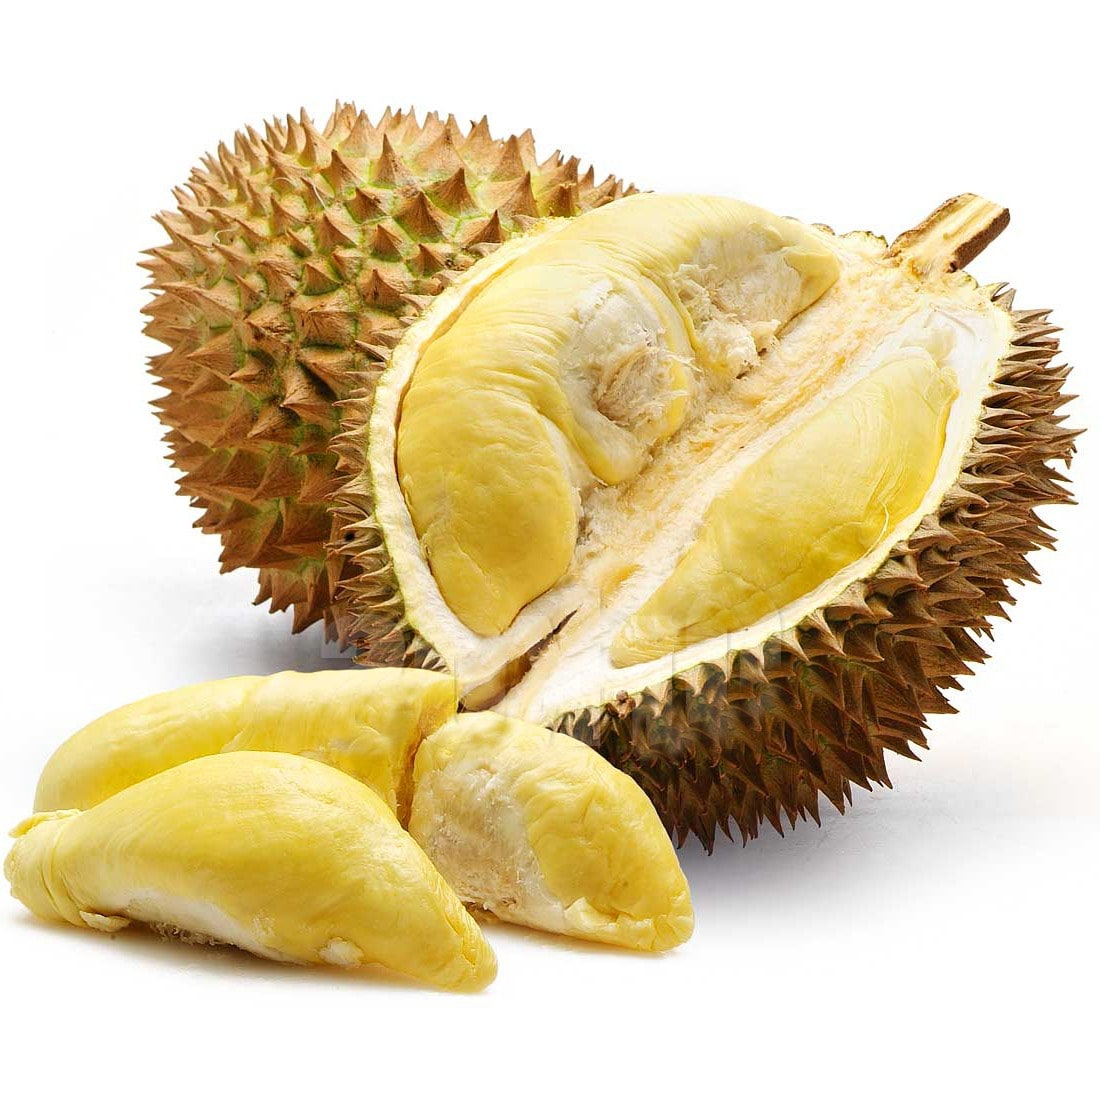 Durian HQ wallpapers